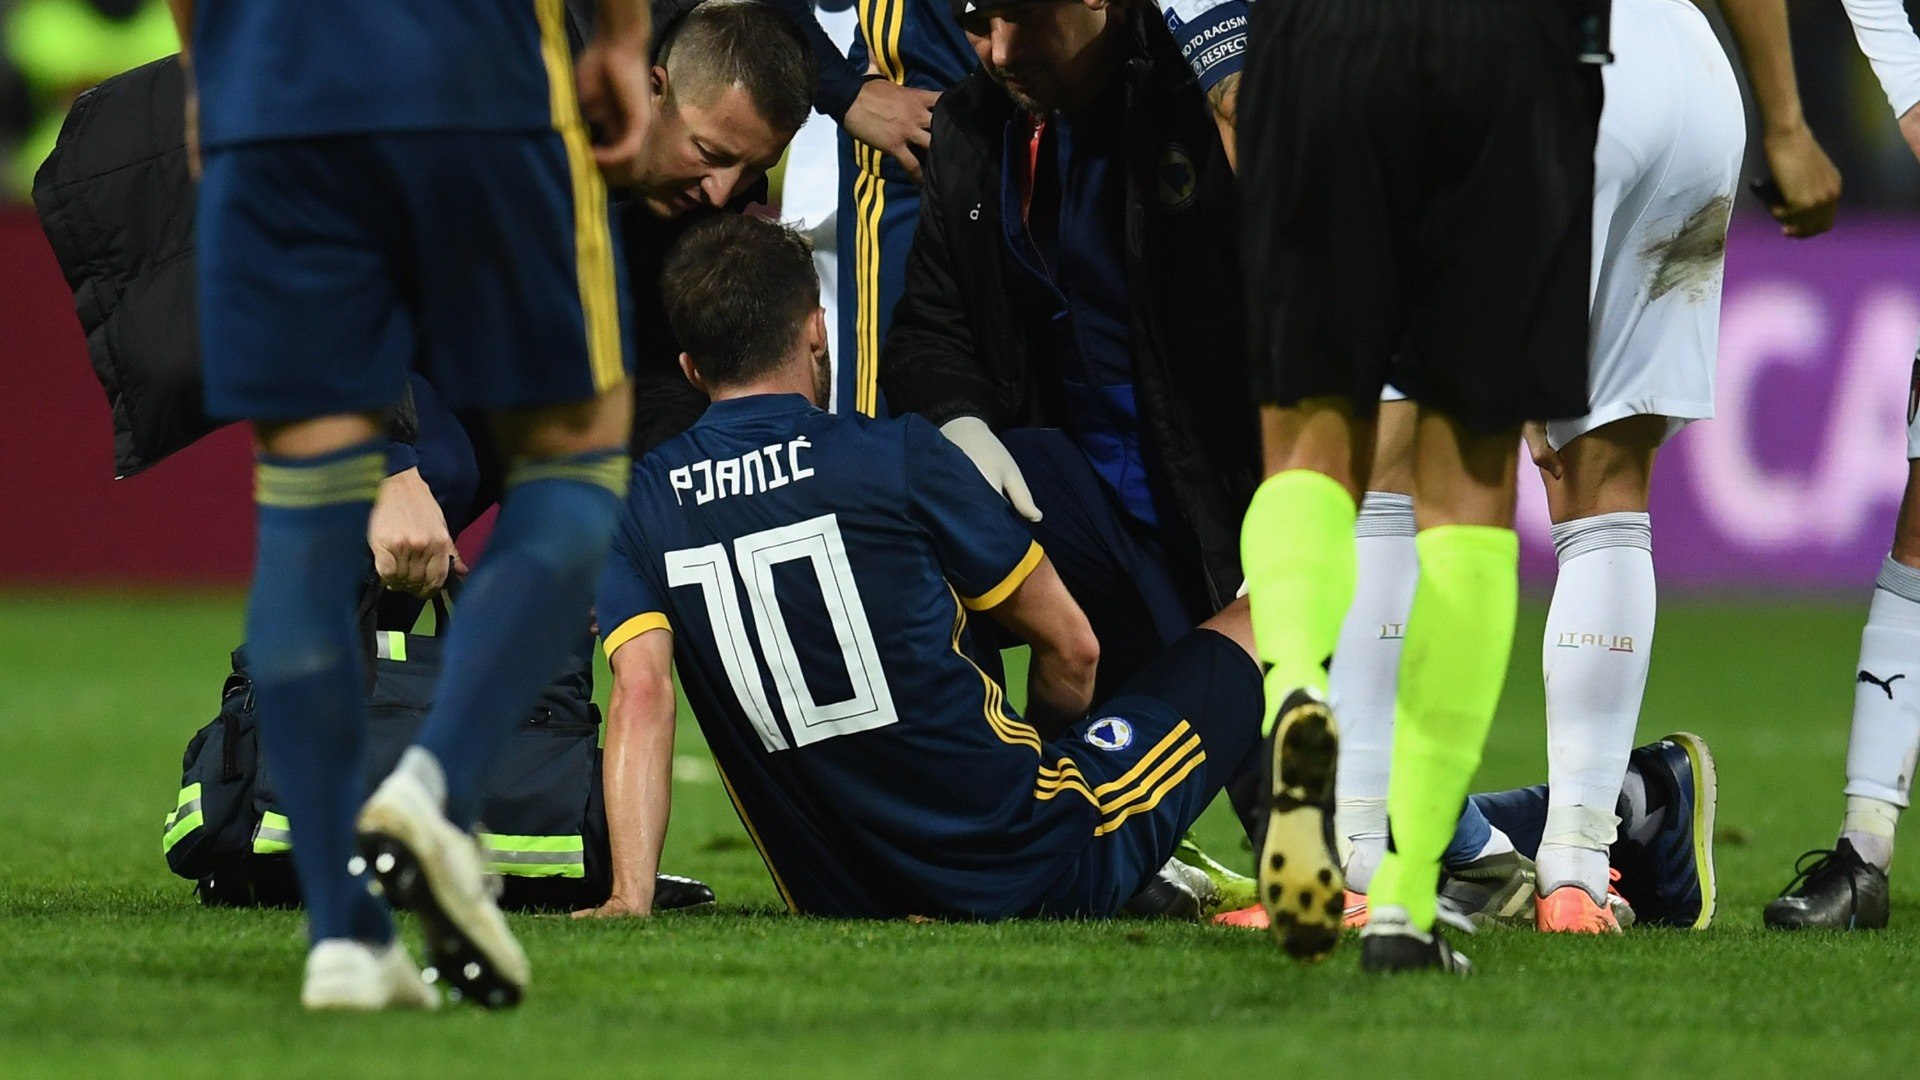 Bosnia confirm Pjanic injury against Italy